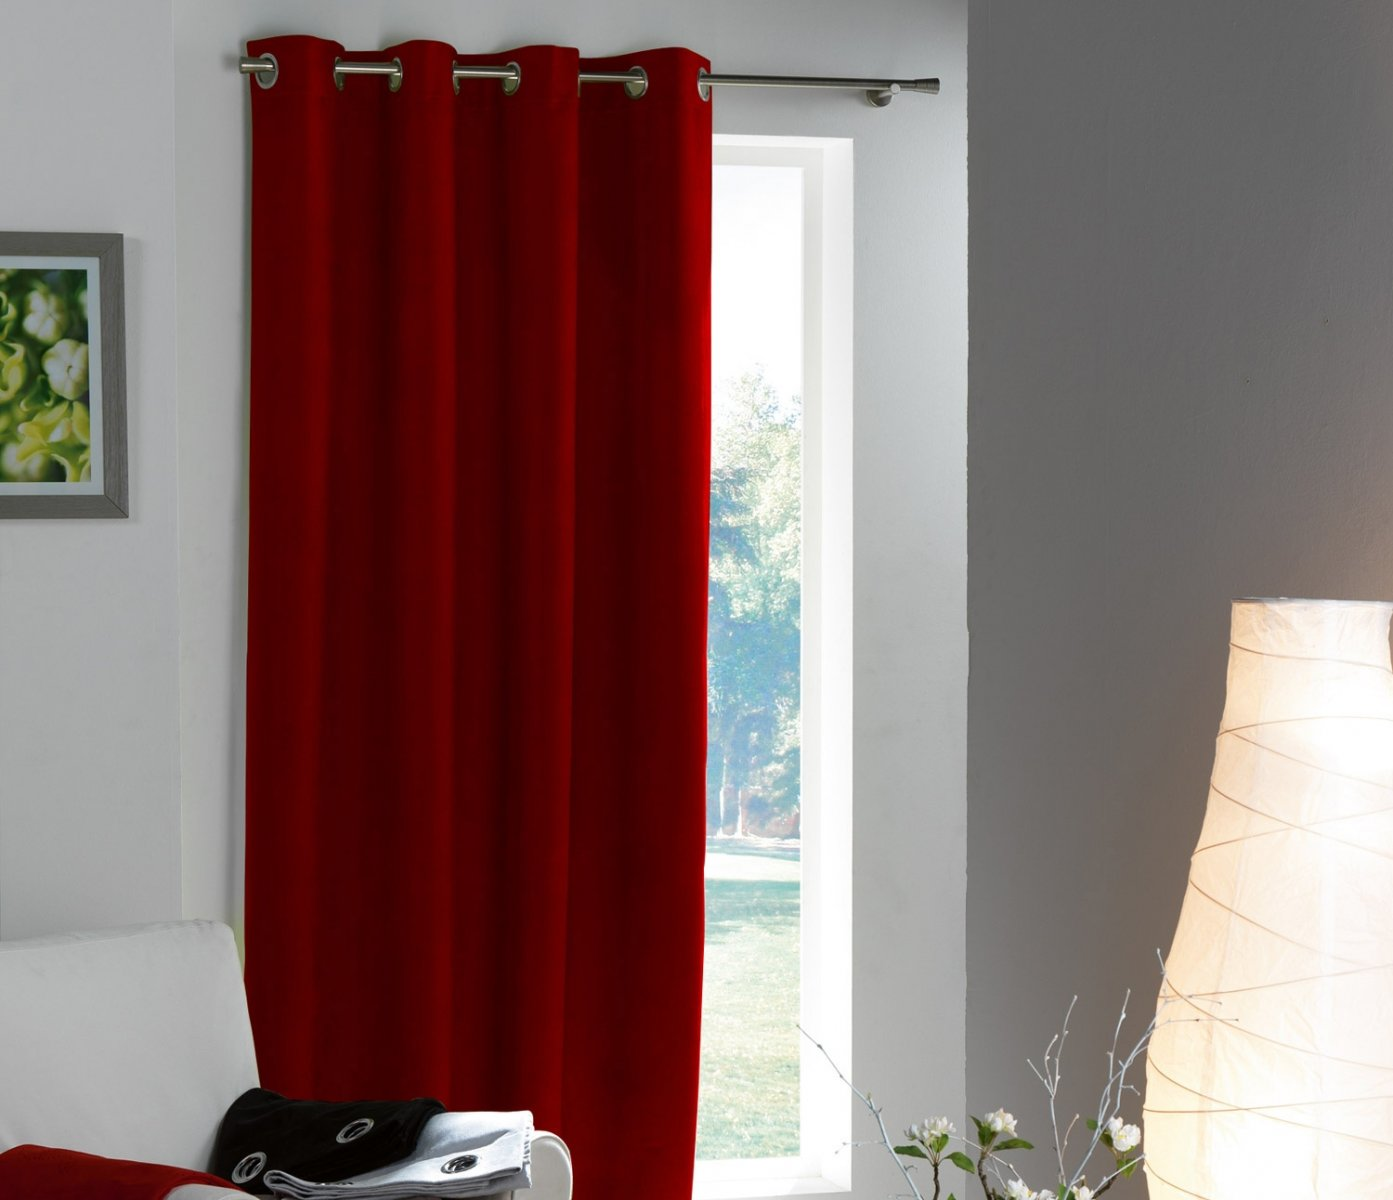 Cortinas para una decoraci n roja decoraci n del hogar for Decoracion del hogar moderno